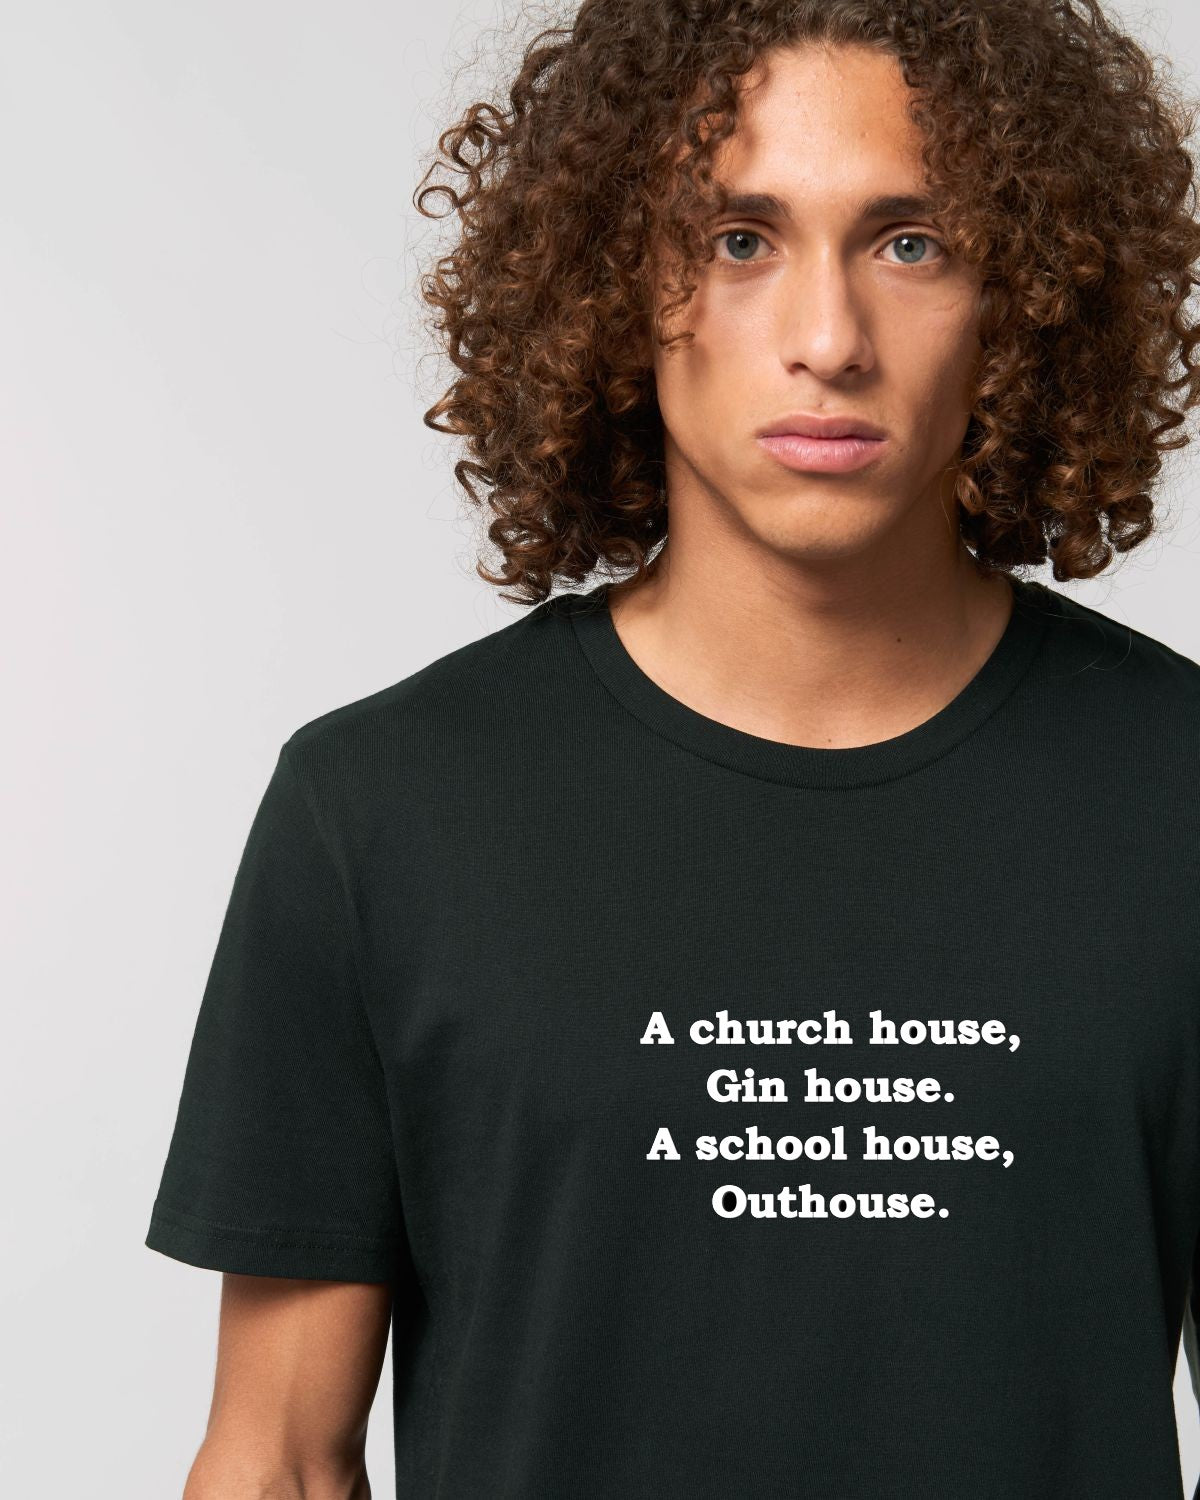 'A CHURCH HOUSE, GIN HOUSE. SCHOOL HOUSE, OUT HOUSE.' EMBROIDERED MEN'S MEDIUM ORGANIC T-SHIRT